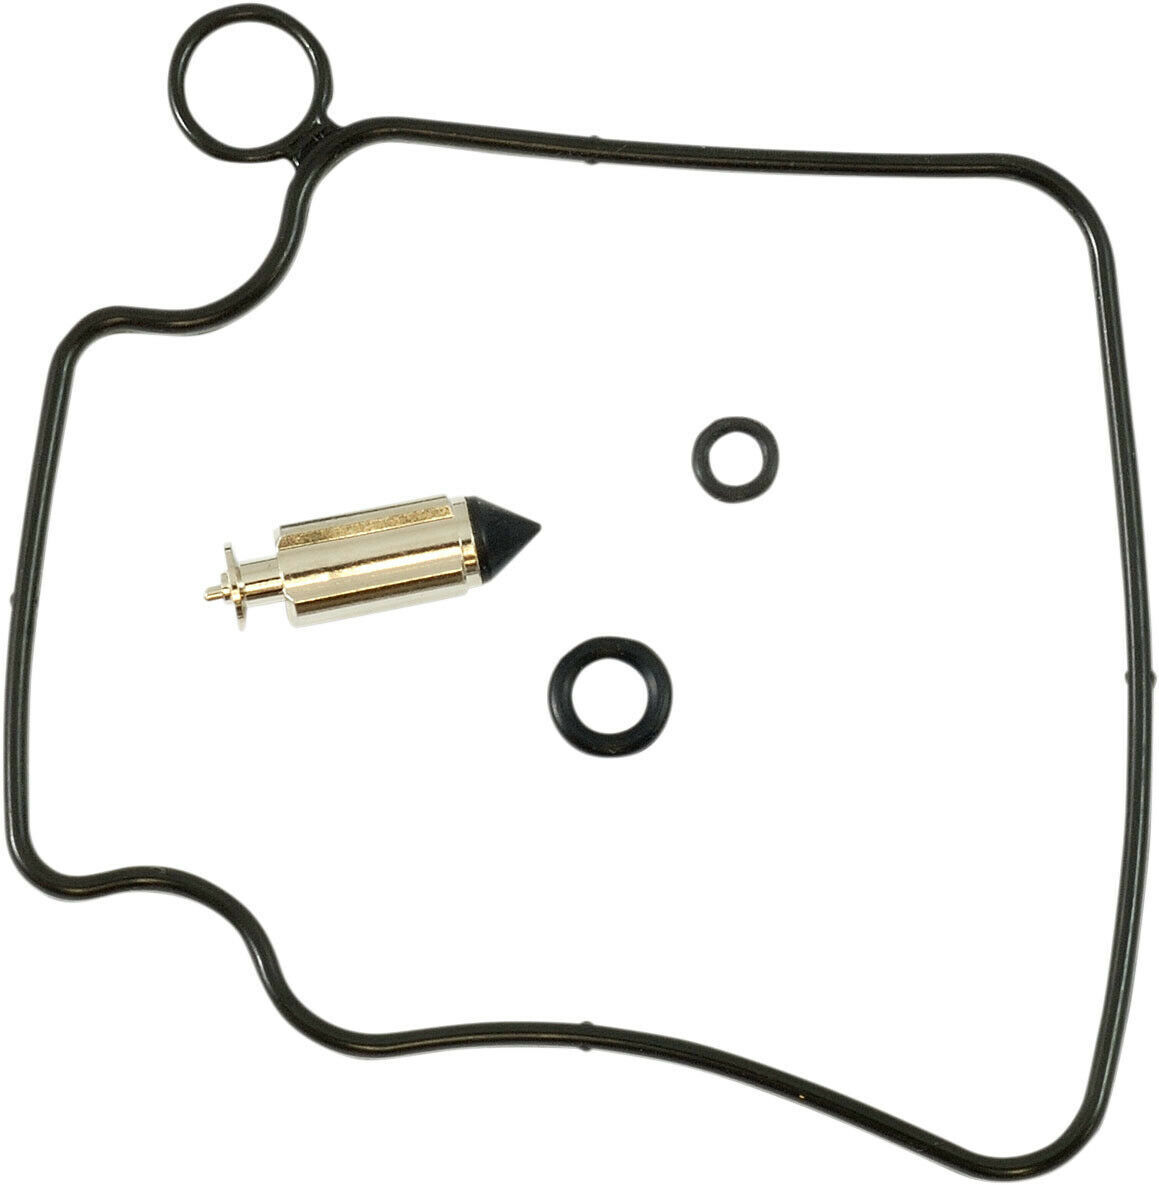 Honda VT600C 1993-98 Carburetor Repair Kit - K&L 18-4873